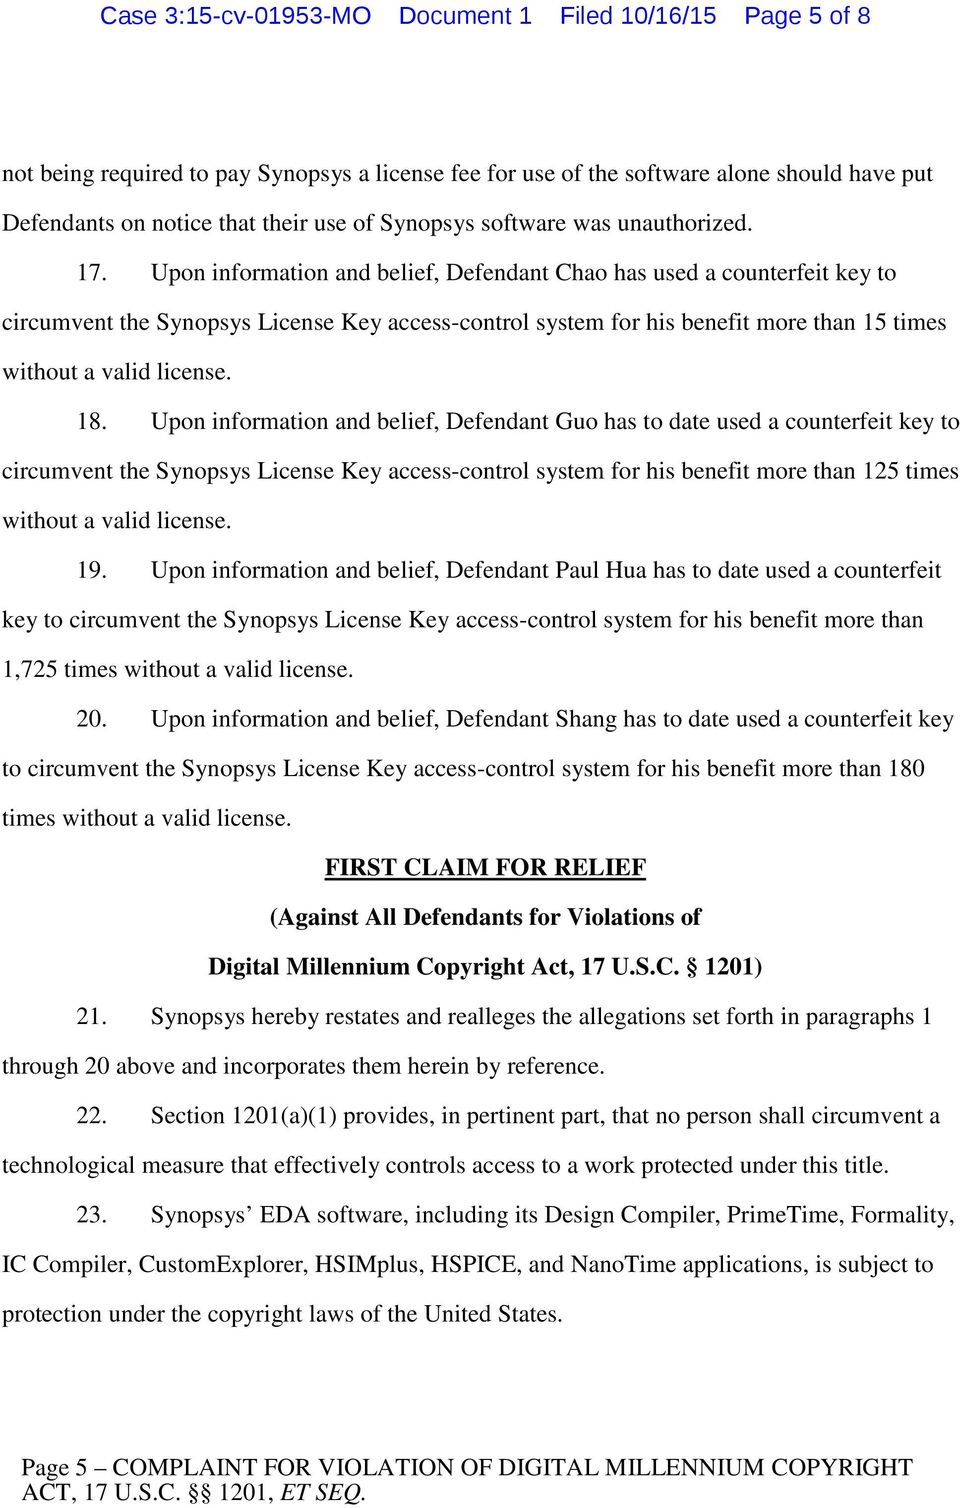 Upon information and belief, Defendant Chao has used a counterfeit key to circumvent the Synopsys License Key access-control system for his benefit more than 15 times without a valid license. 18.